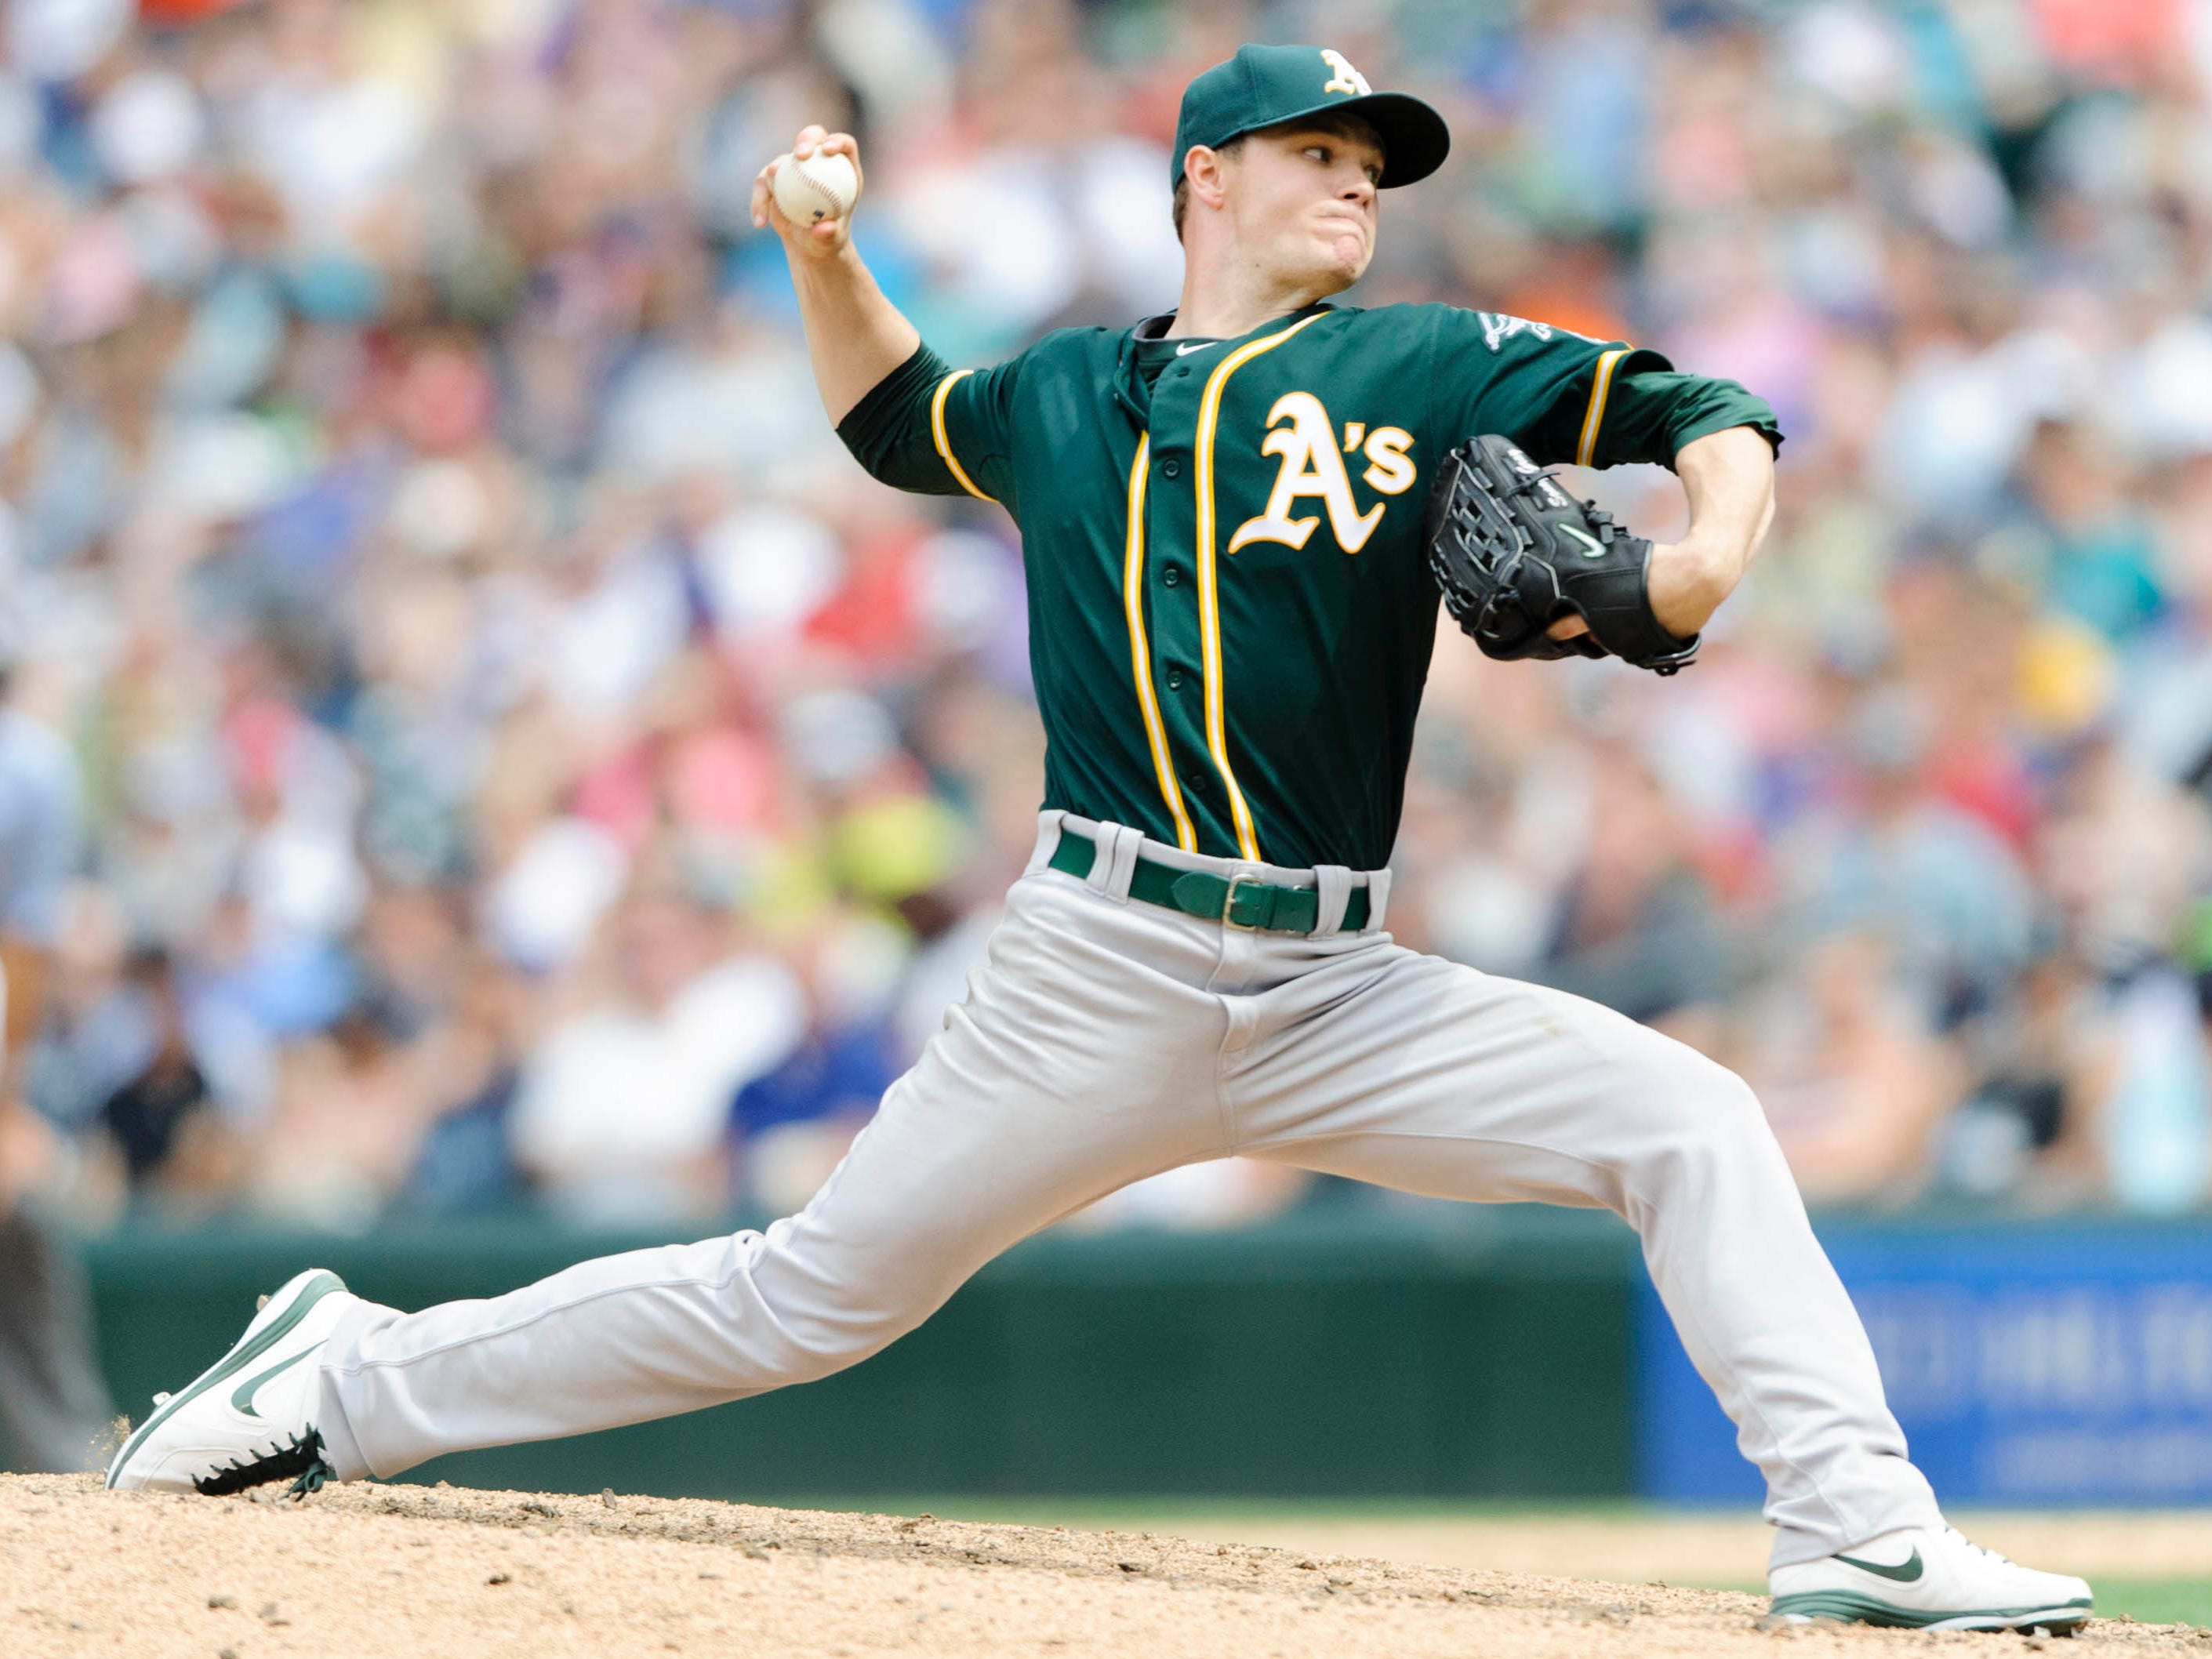 Jul 13, 2014; Seattle, WA, USA; Oakland Athletics starting pitcher Sonny Gray (54) pitches to the Seattle Mariners during the eighth inning at Safeco Field. Mandatory Credit: Steven Bisig-USA TODAY Sports